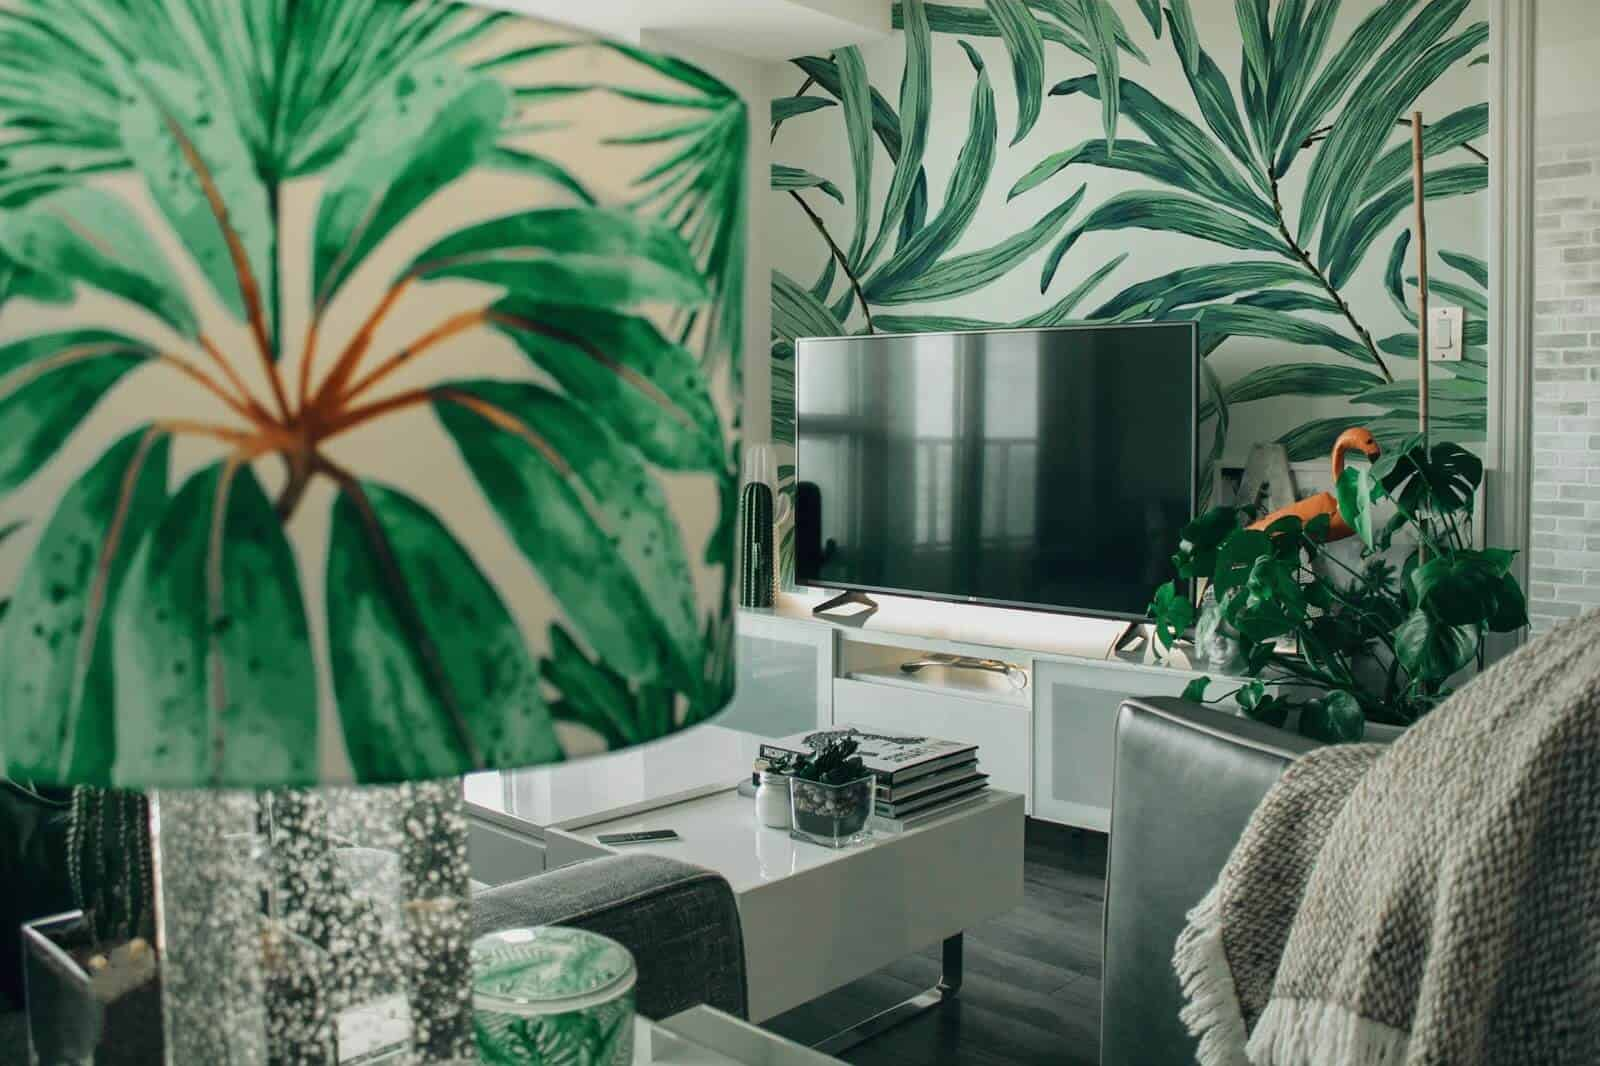 Living room interior with leaf print wallpaper